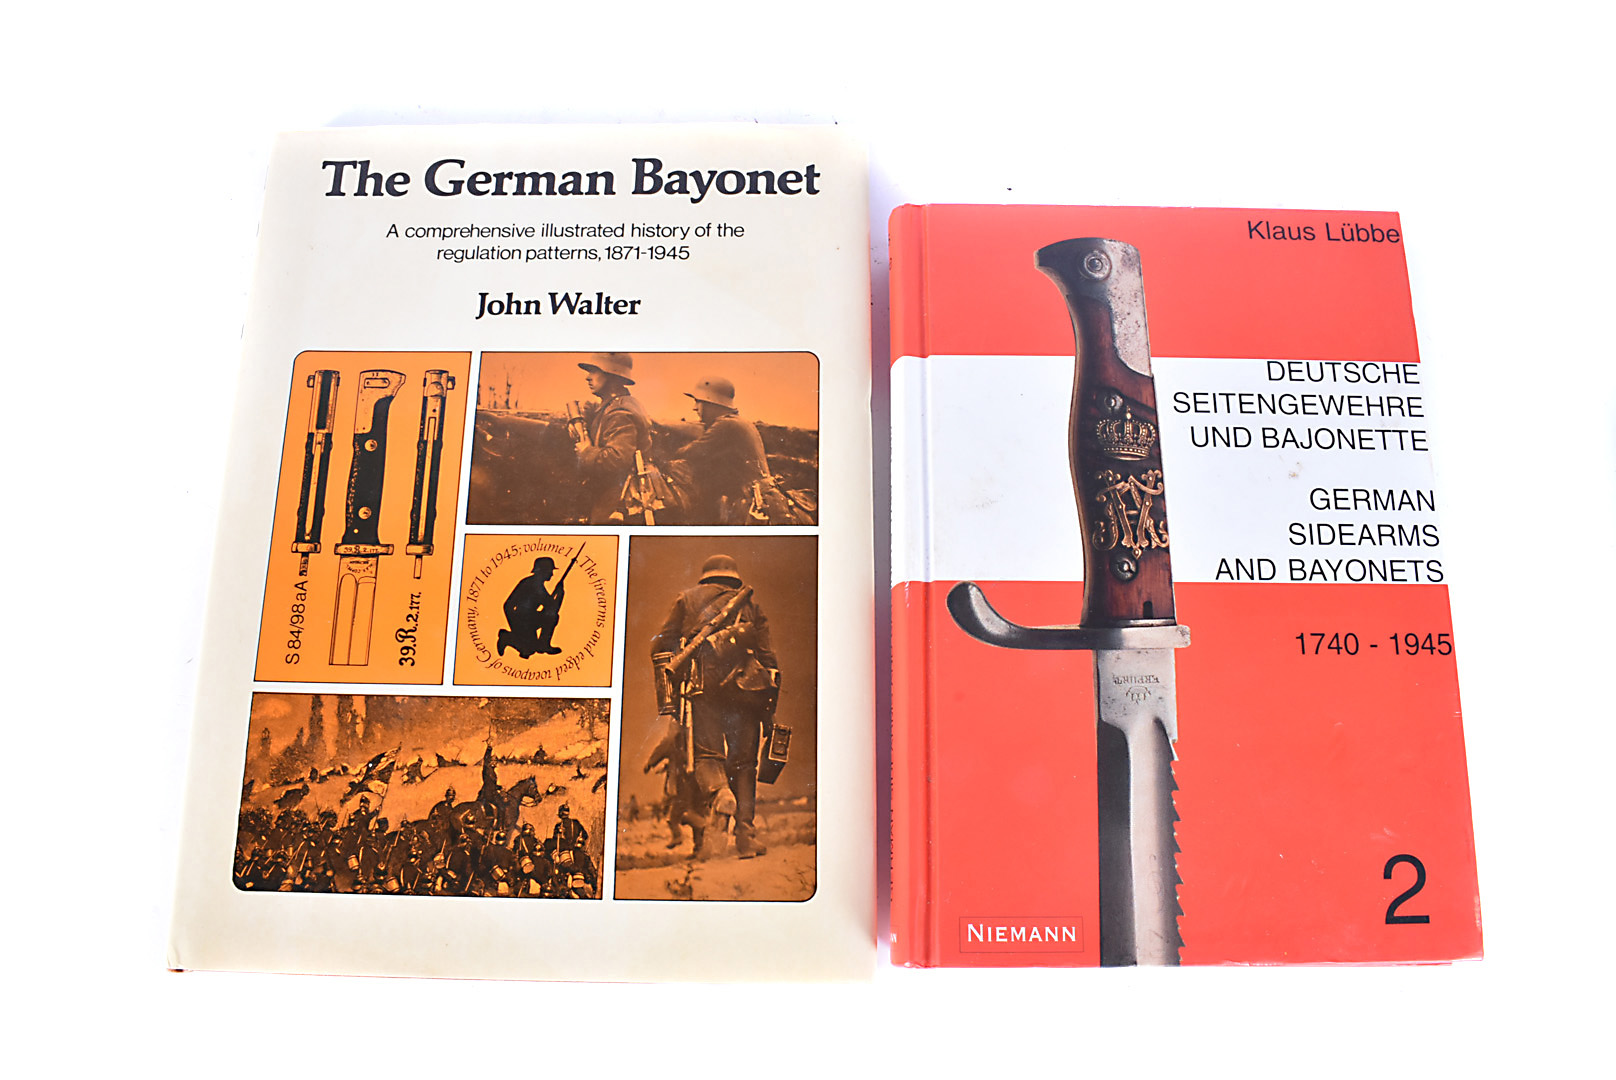 The German Bayonet, A comprehensive illustrated history of the regulation patterns, 1871-1945 by